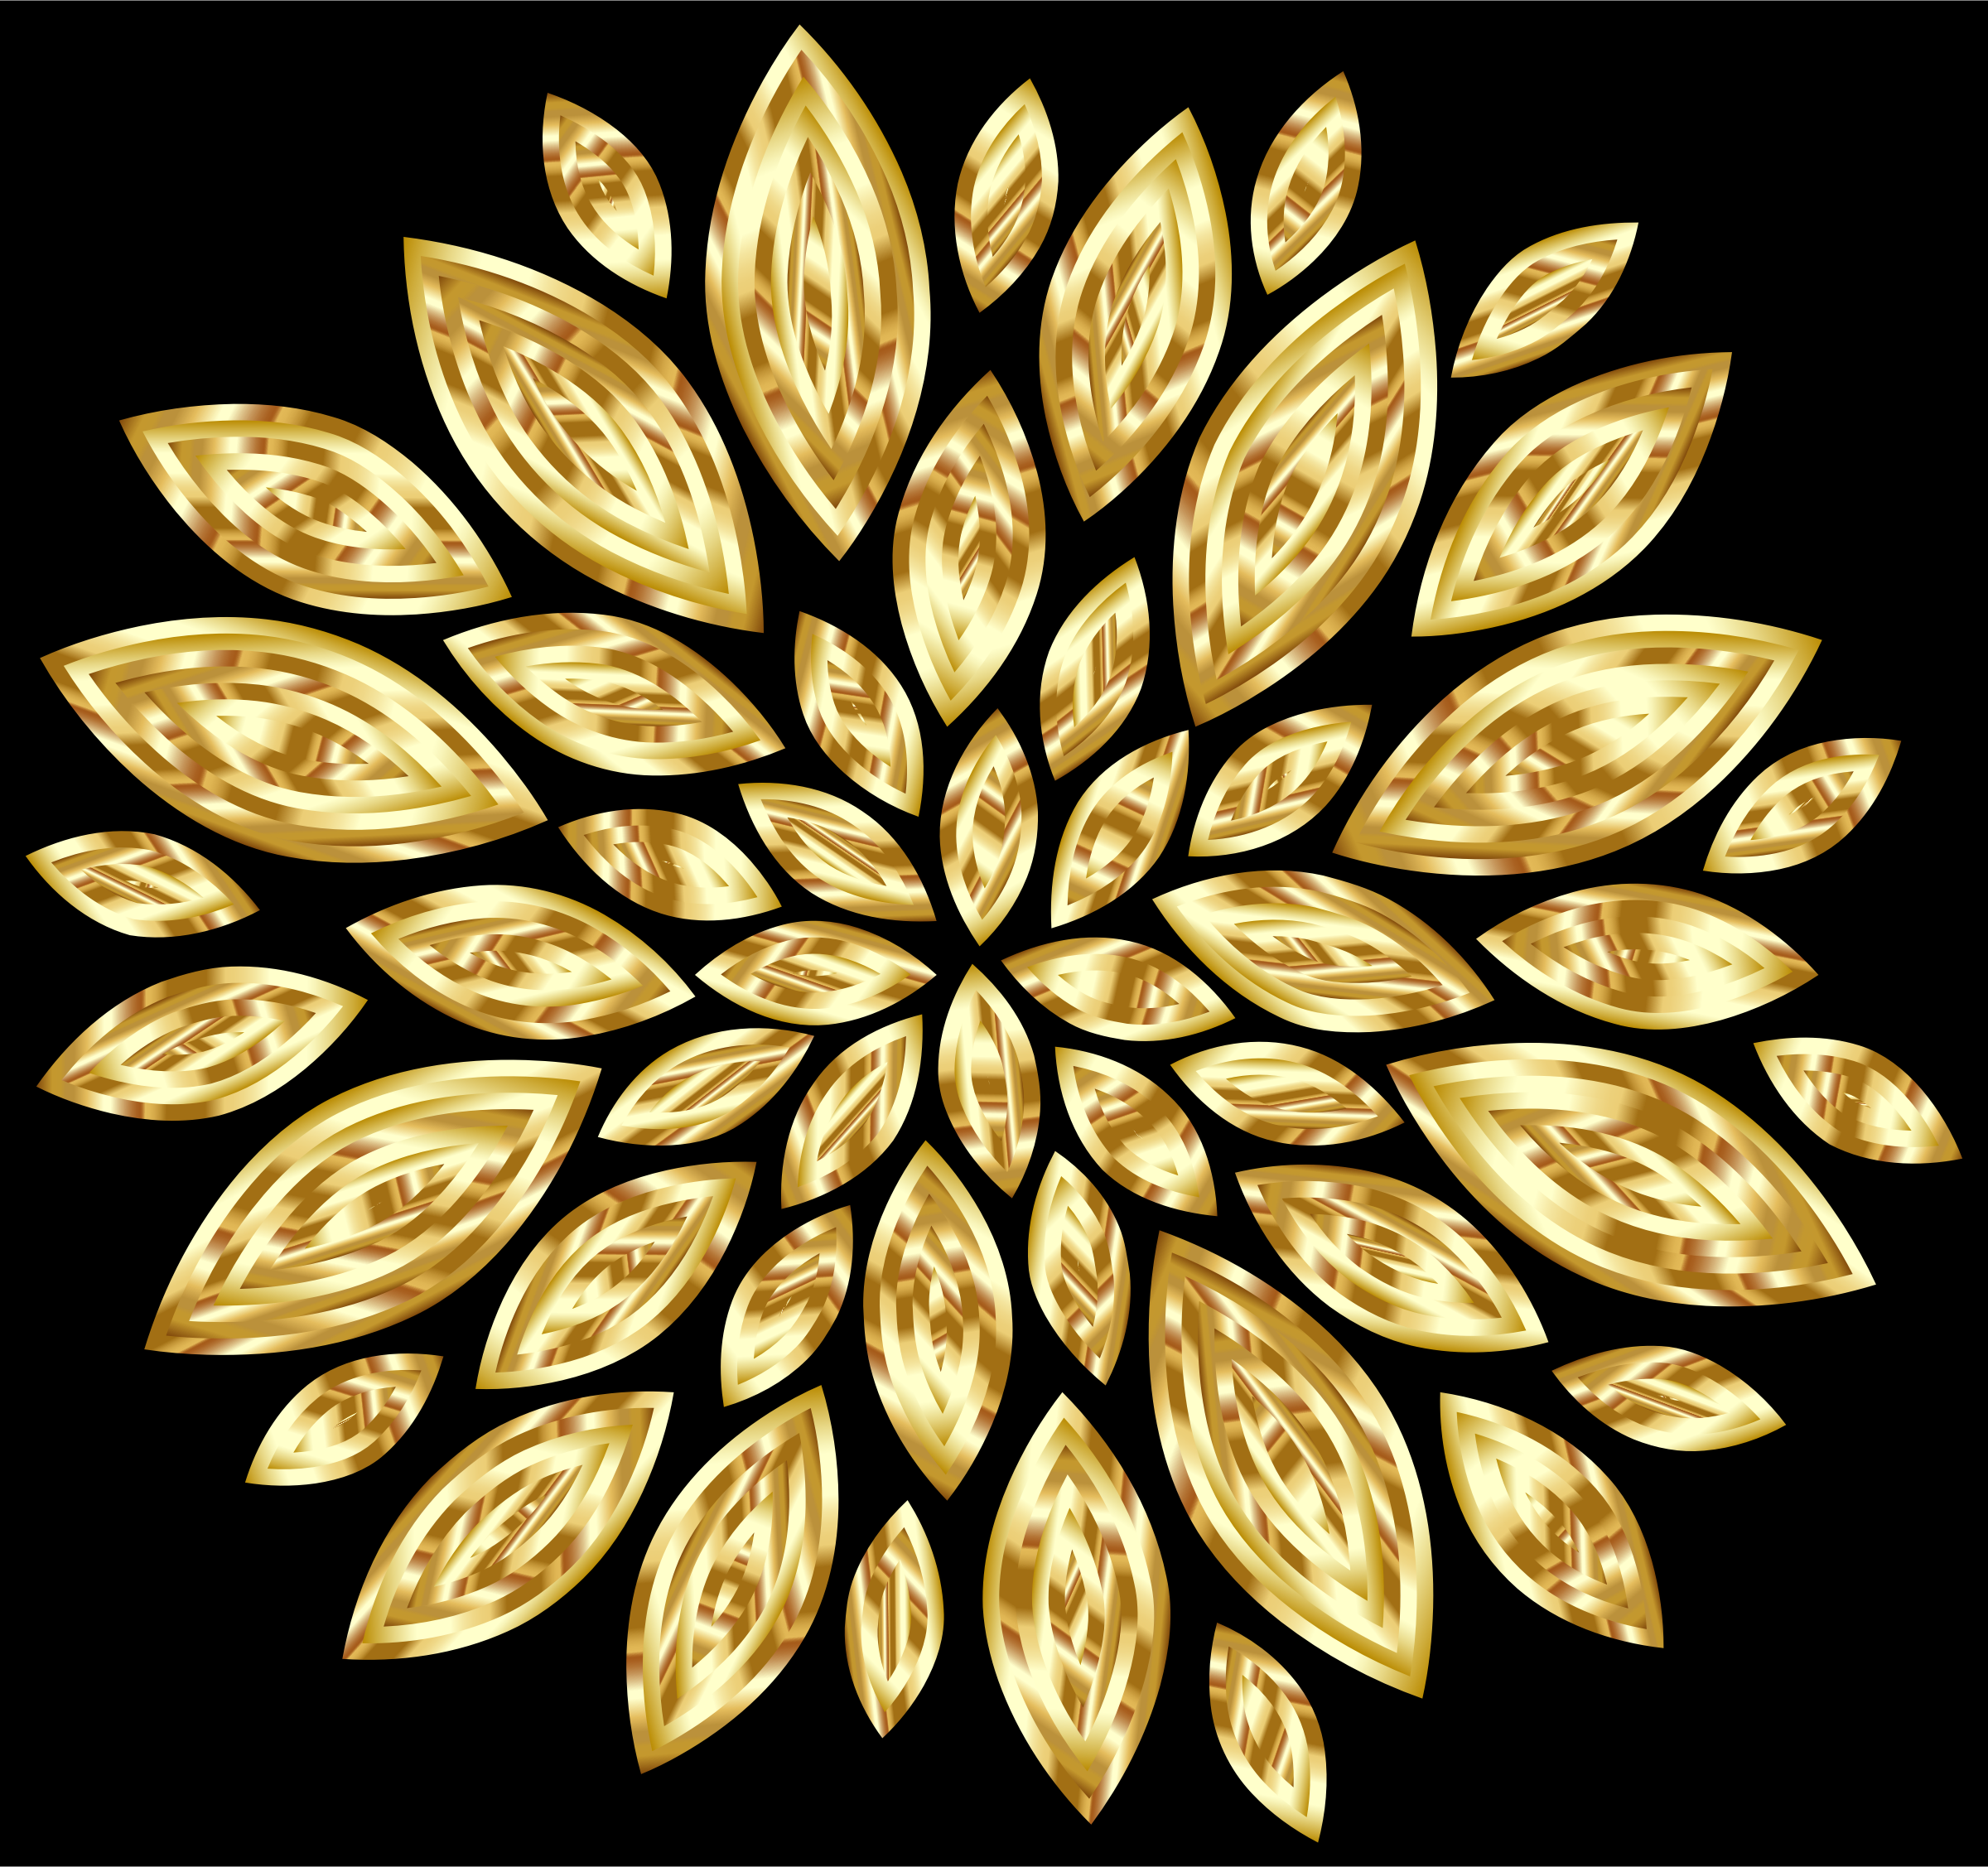 Gold Flower Petals Variation 2 With Background by GDJ